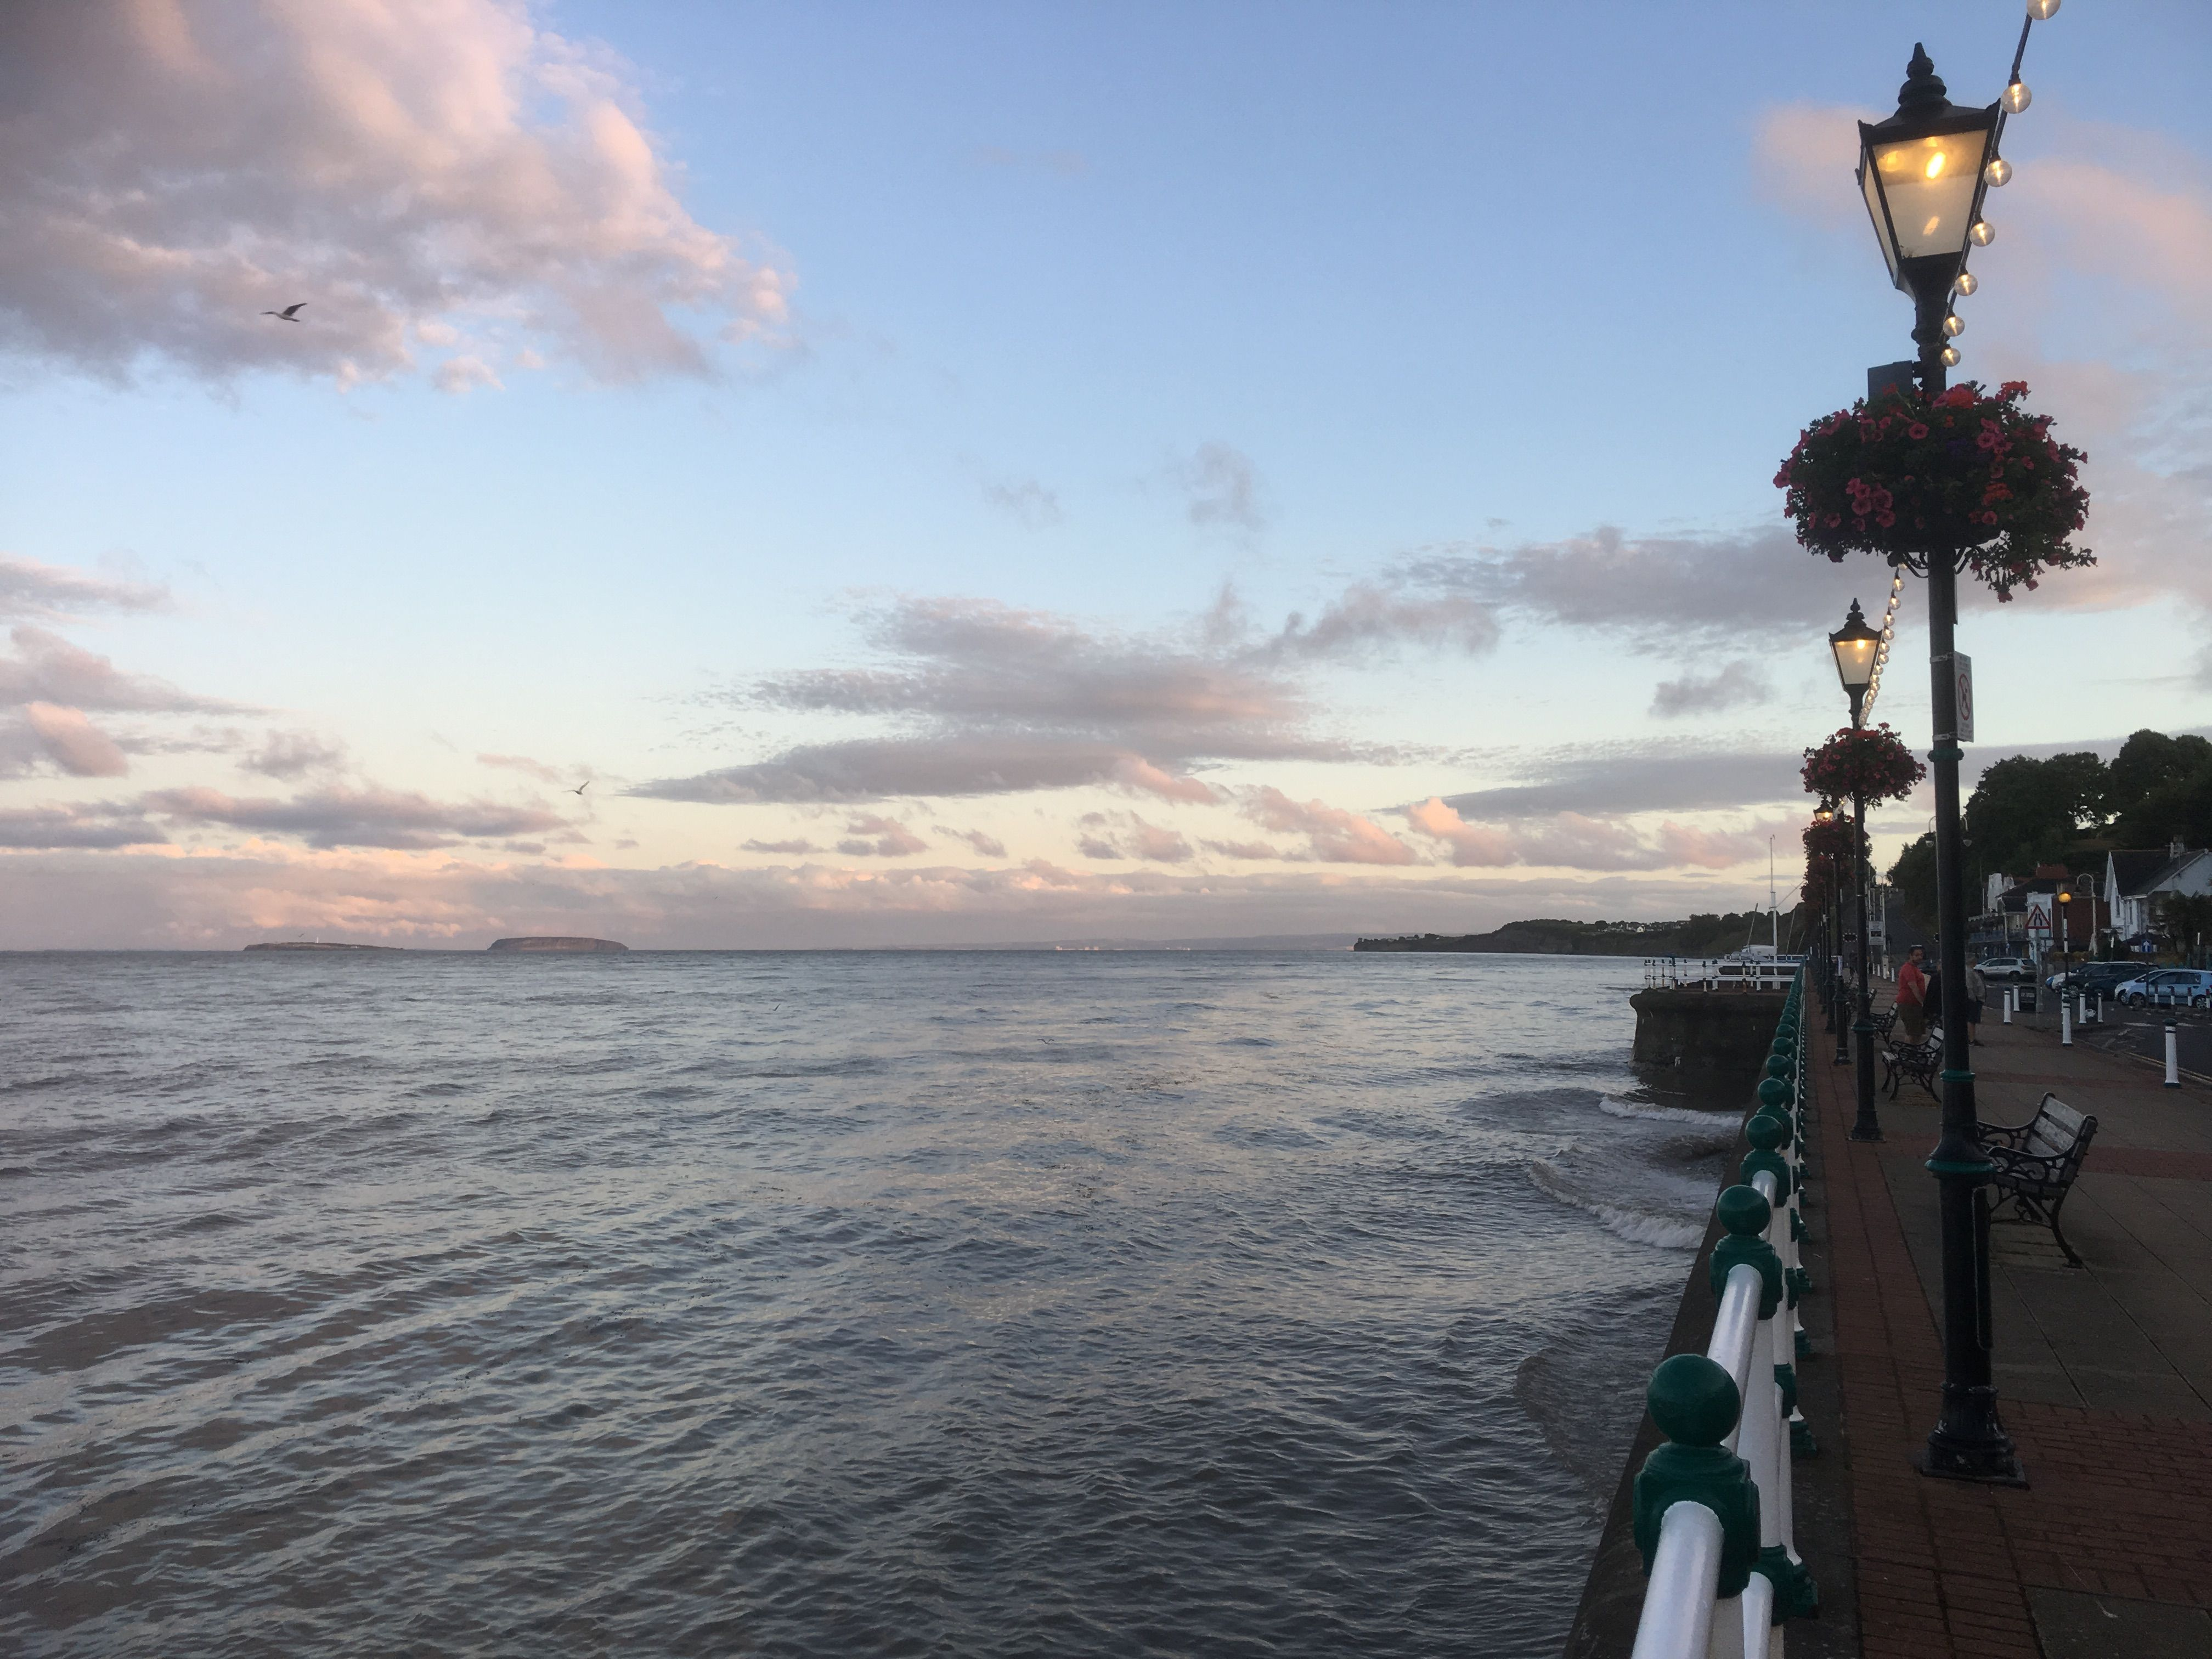 Bed And Breakfast Penarth High Tide At Penarth Coastlines And Harbours Of Wales